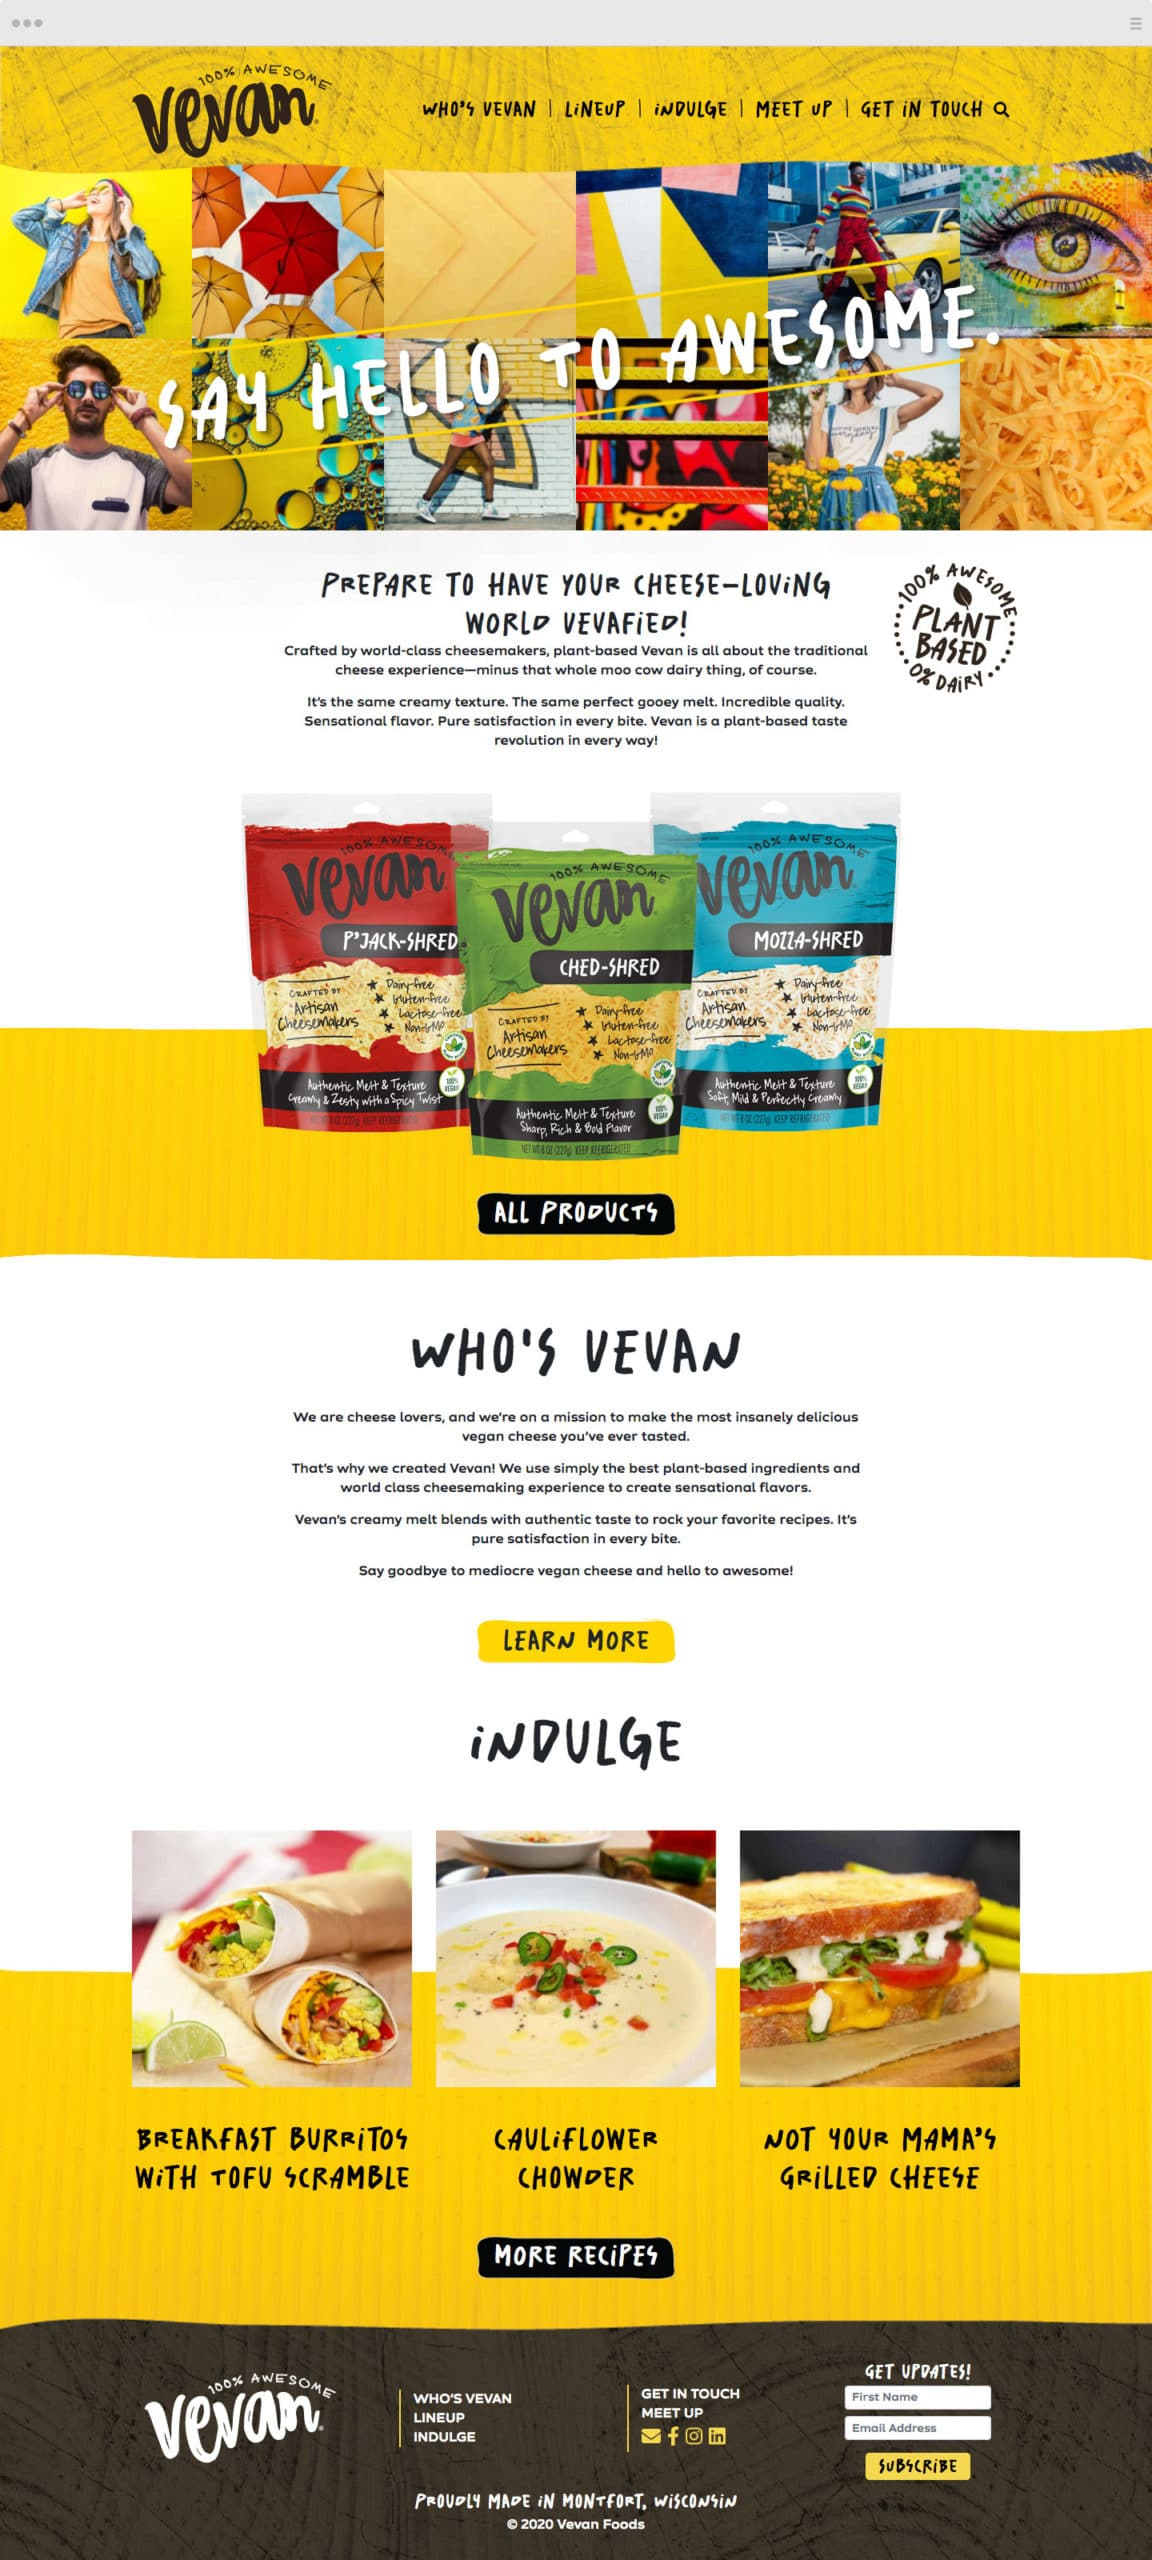 Vevan Foods Website Design - Homepage